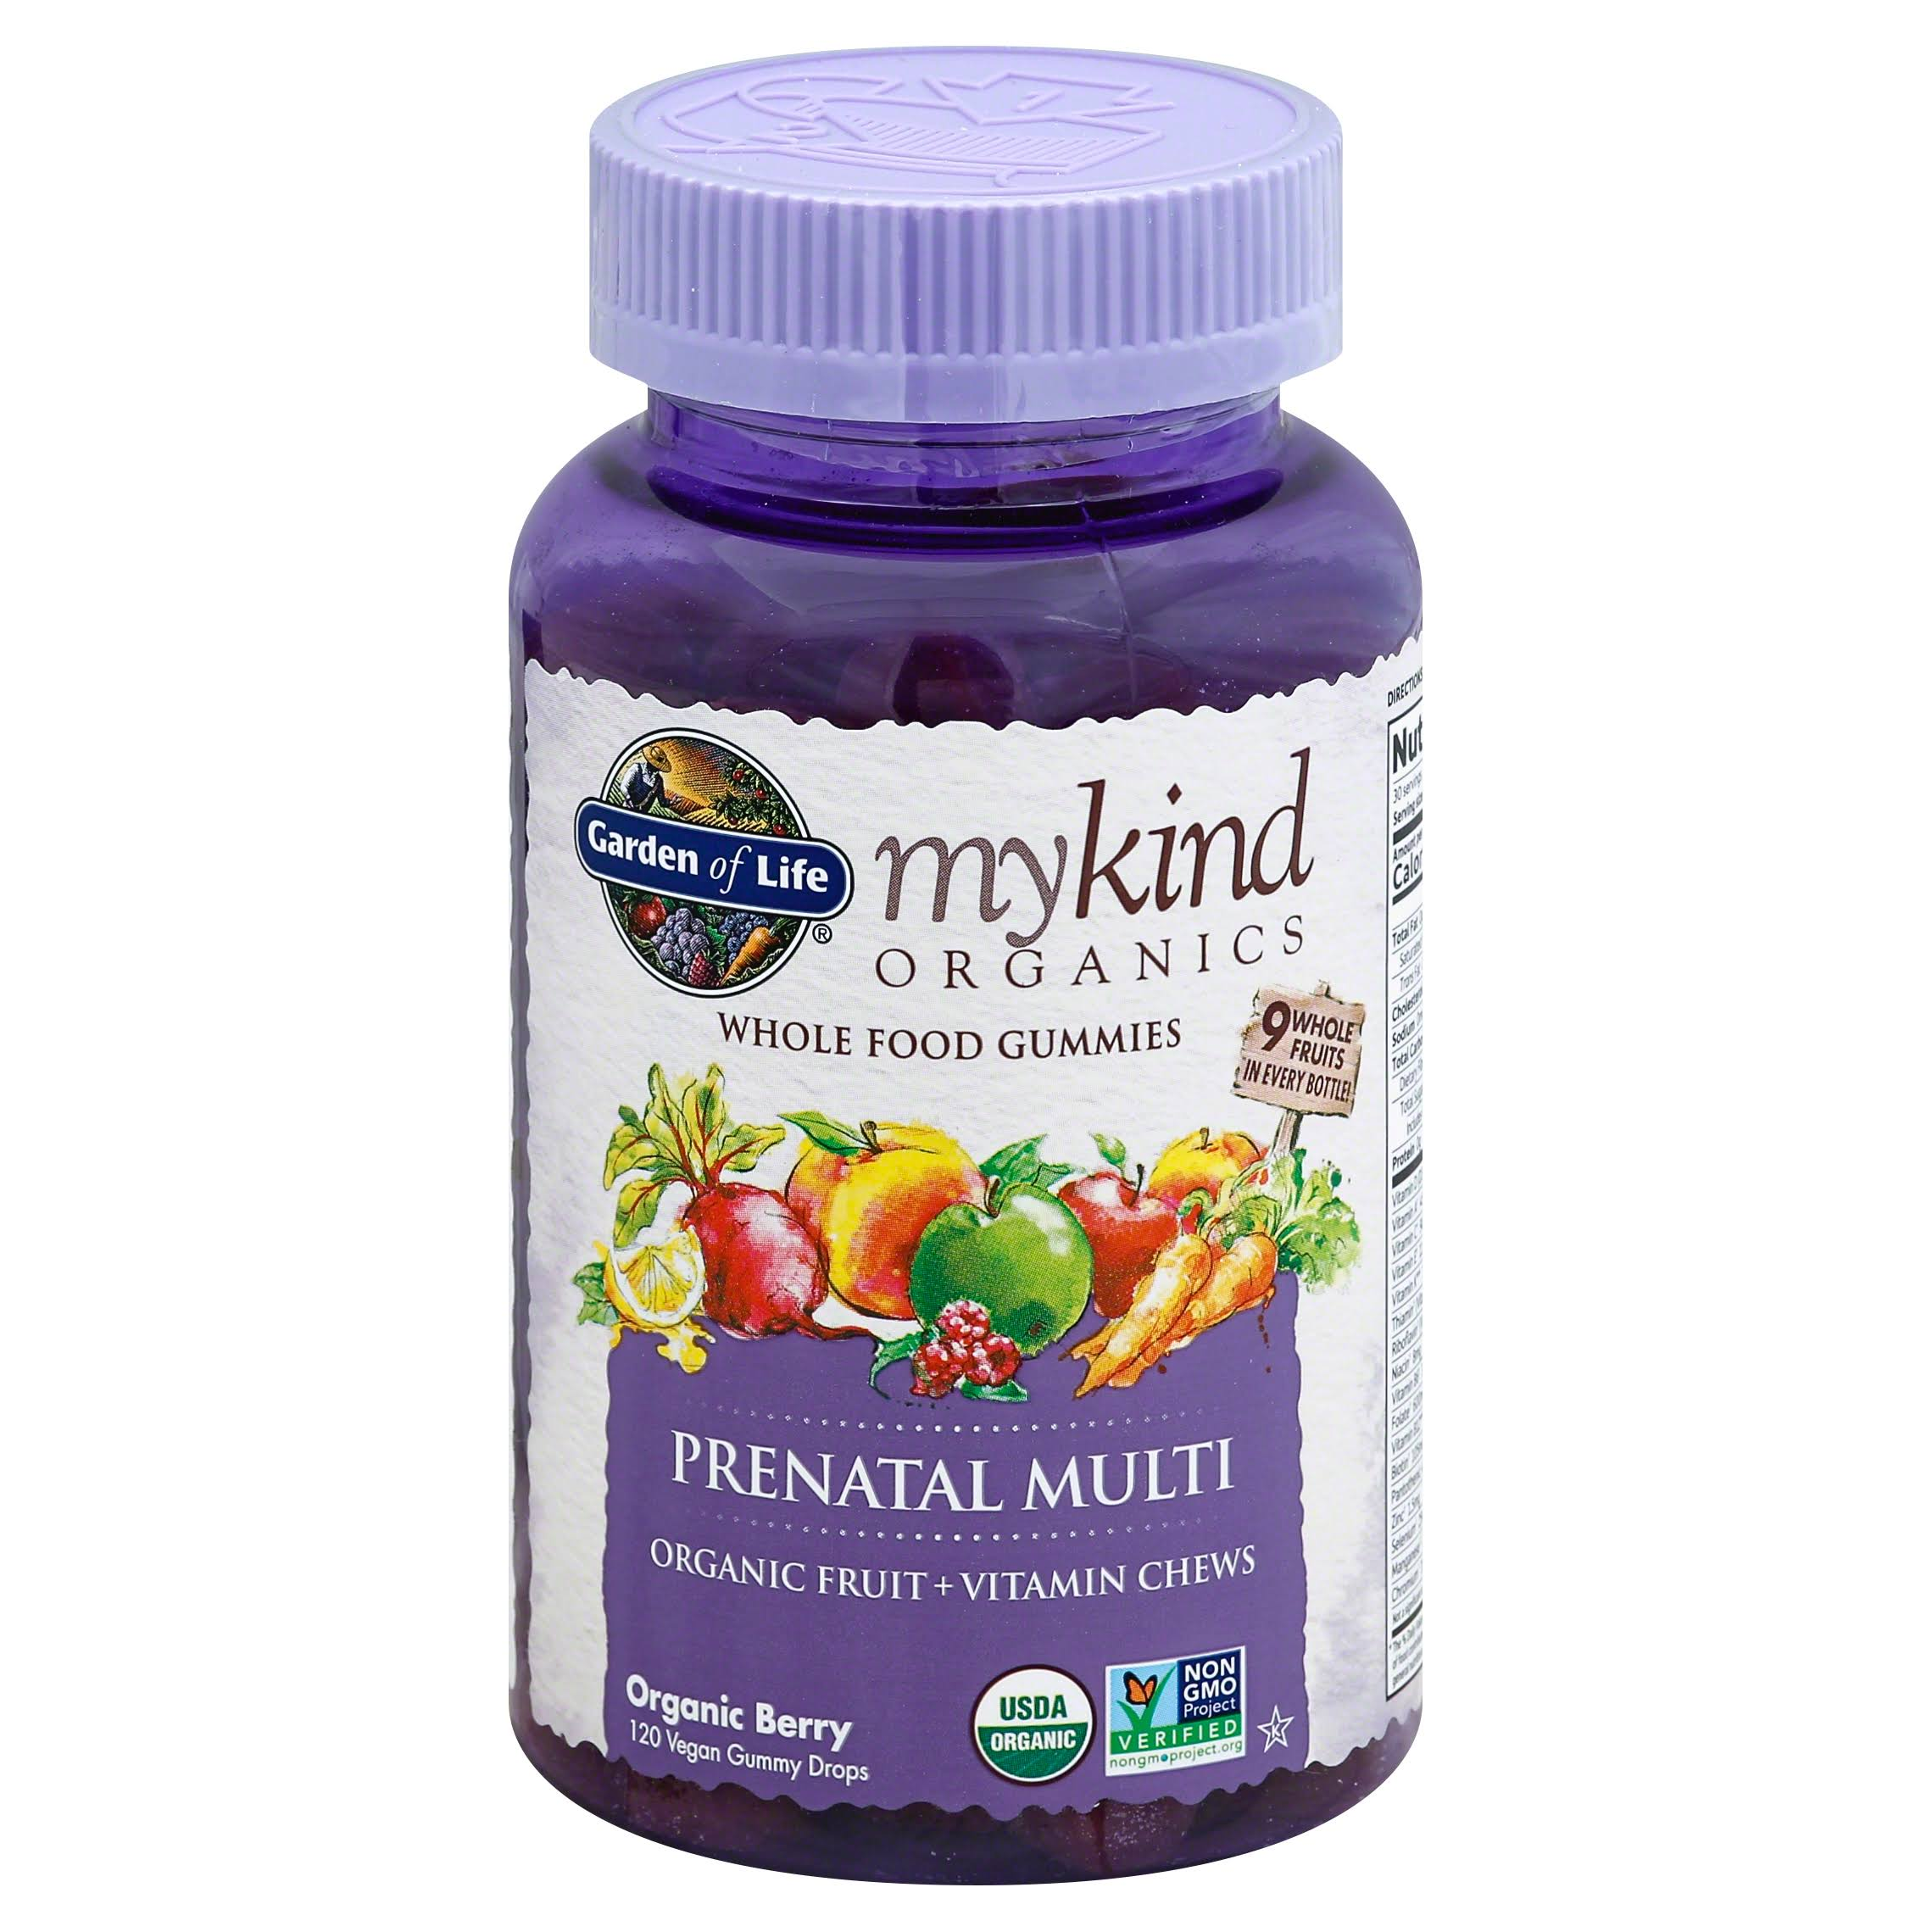 Garden of Life Prenatal Multi Vitamins - 120 Vegan Gummy Drops